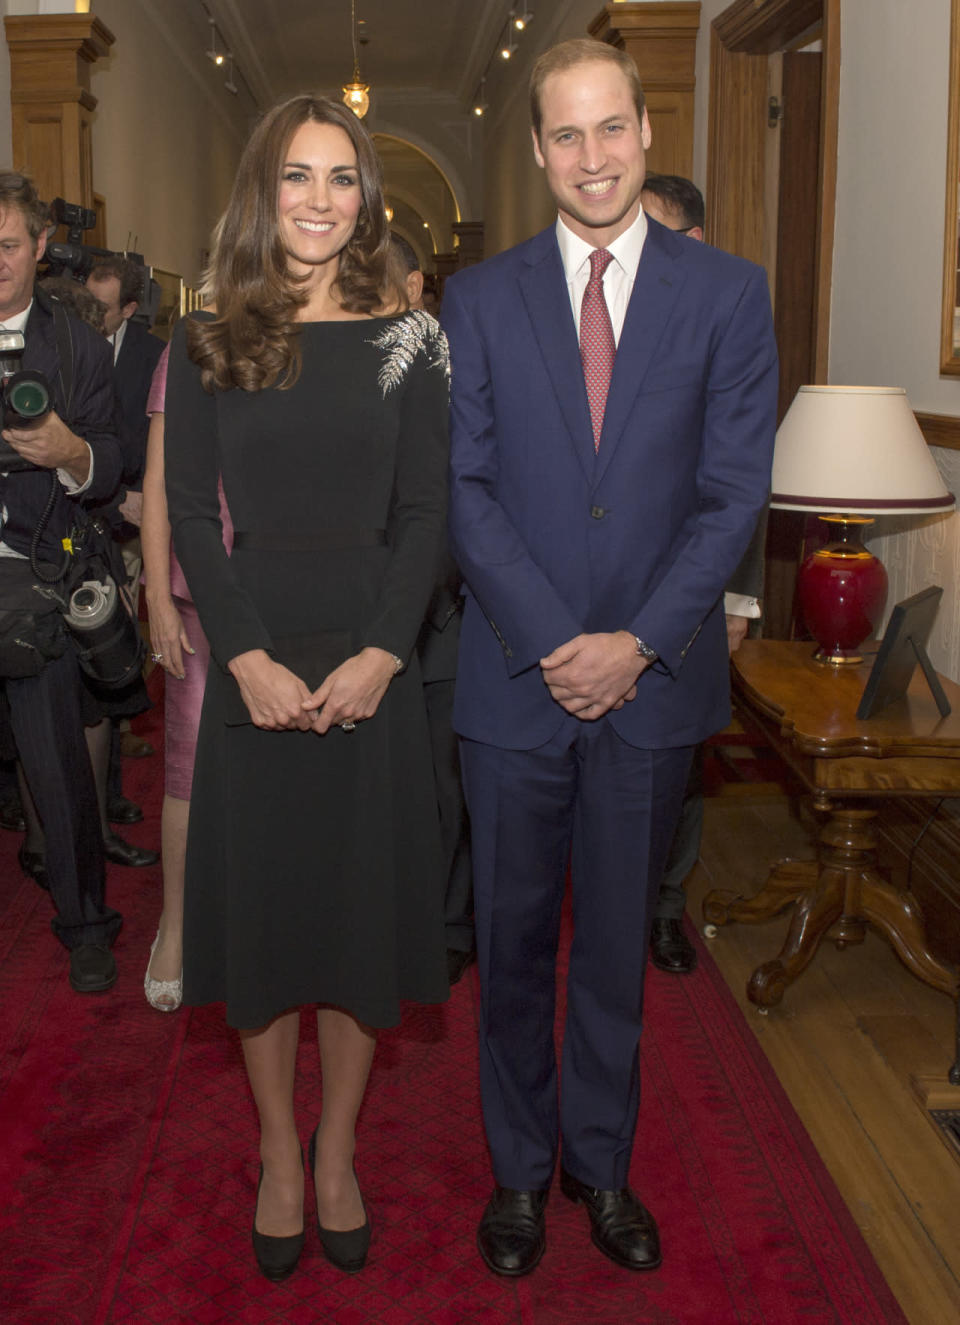 <p>Kate attended a state reception in New Zealand in a black custom Jenny Packham dress featuring a glittering fern embroidery. The Duchess accessorised with Jimmy Choo platform pumps. </p><p><i>[Photo: PA]</i></p>